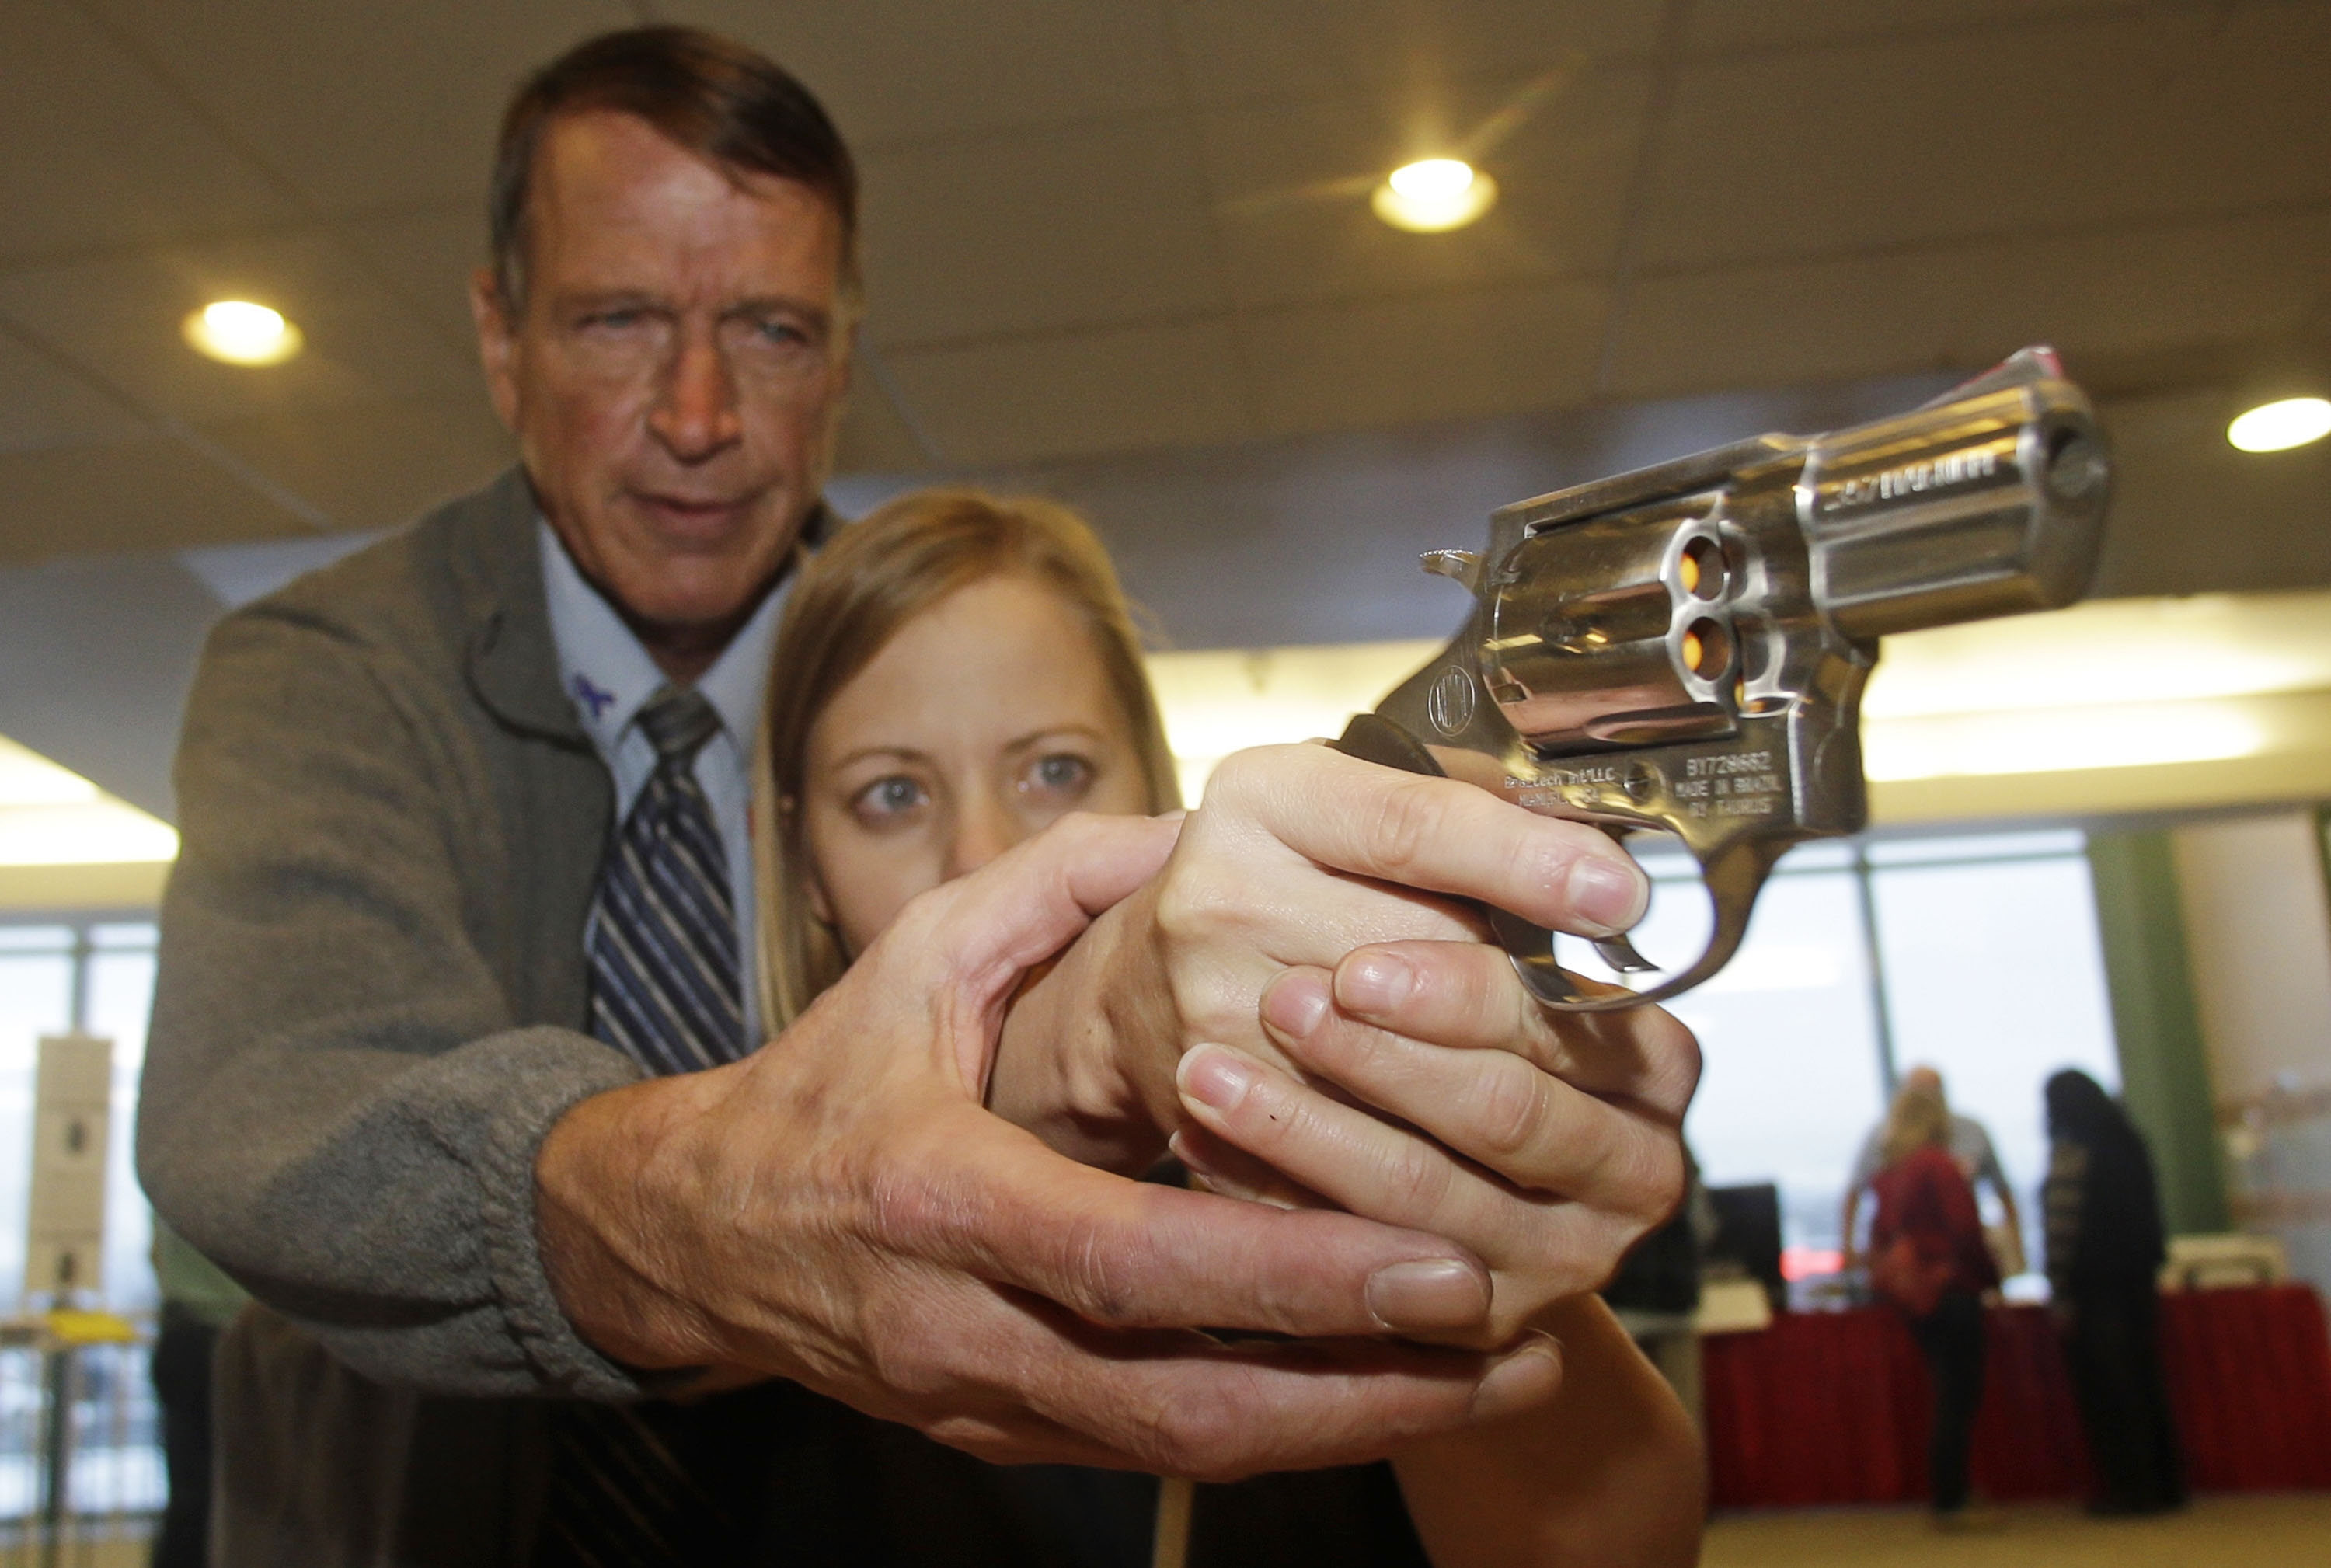 Photo: Teacher with gun (AP Photo)